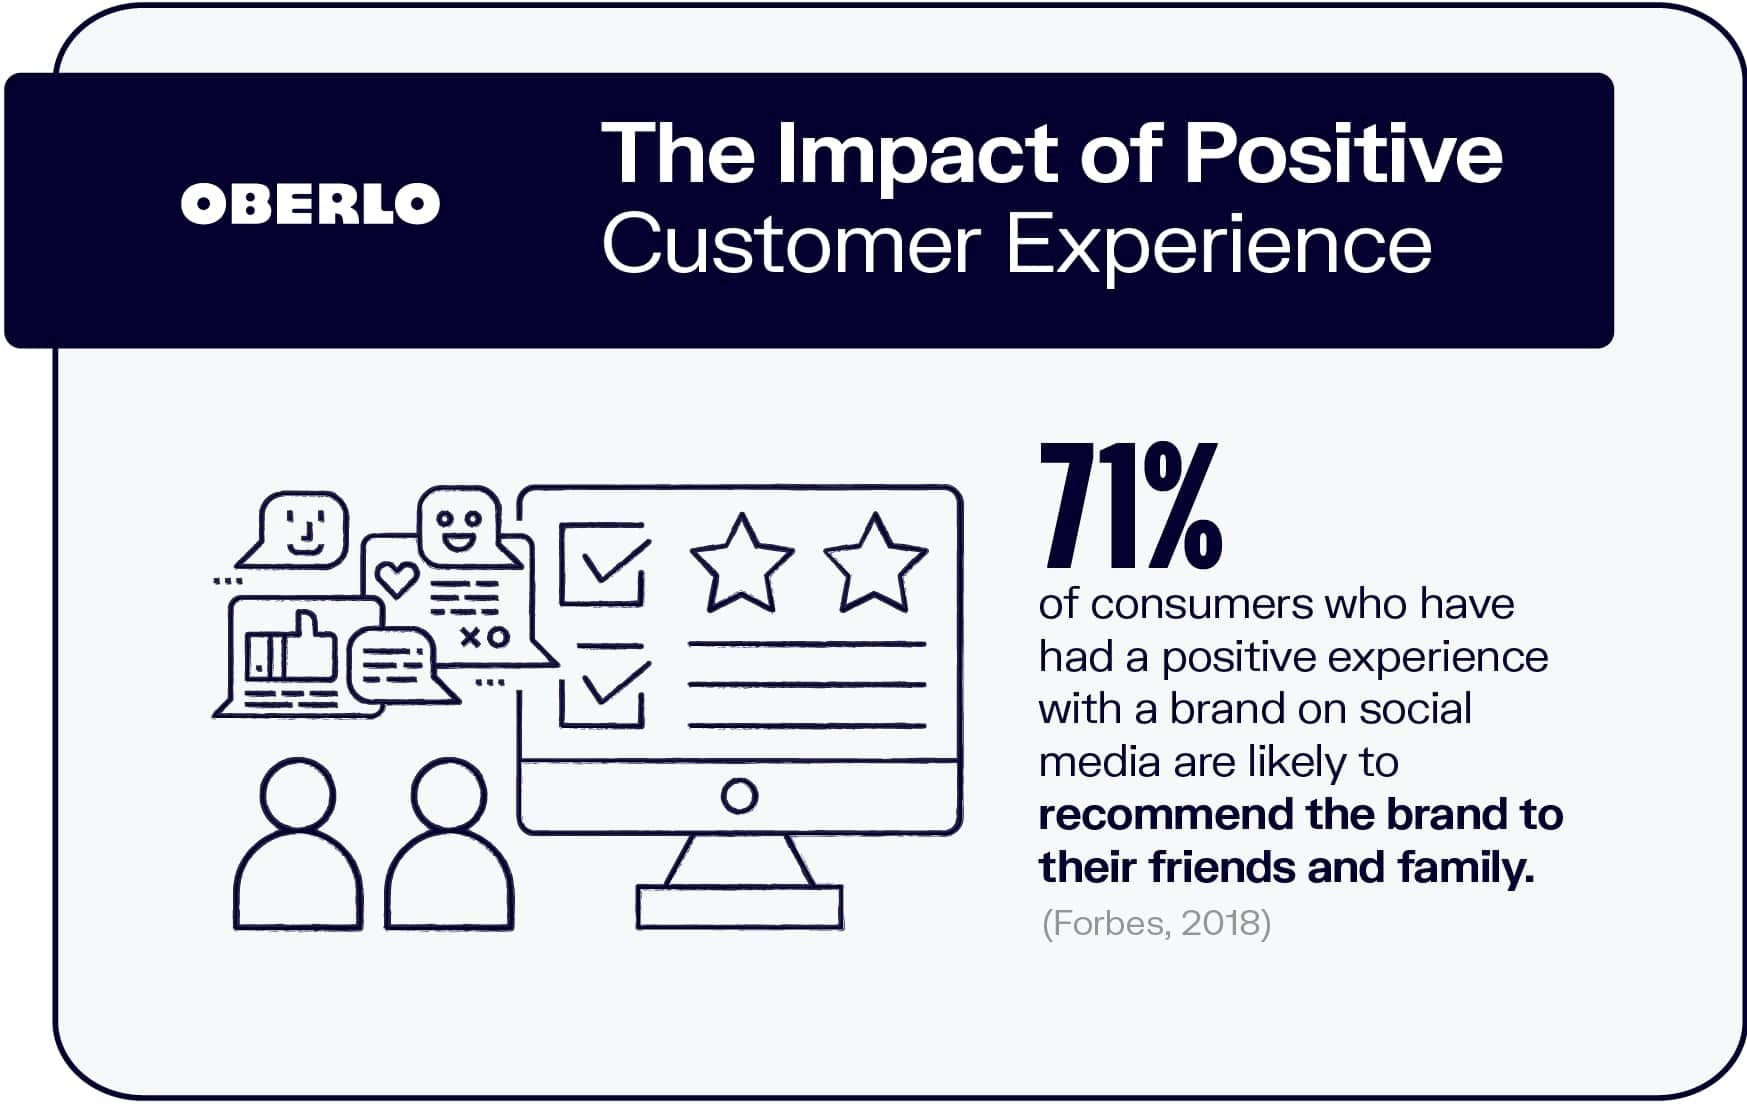 The Impact of Positive Customer Experience